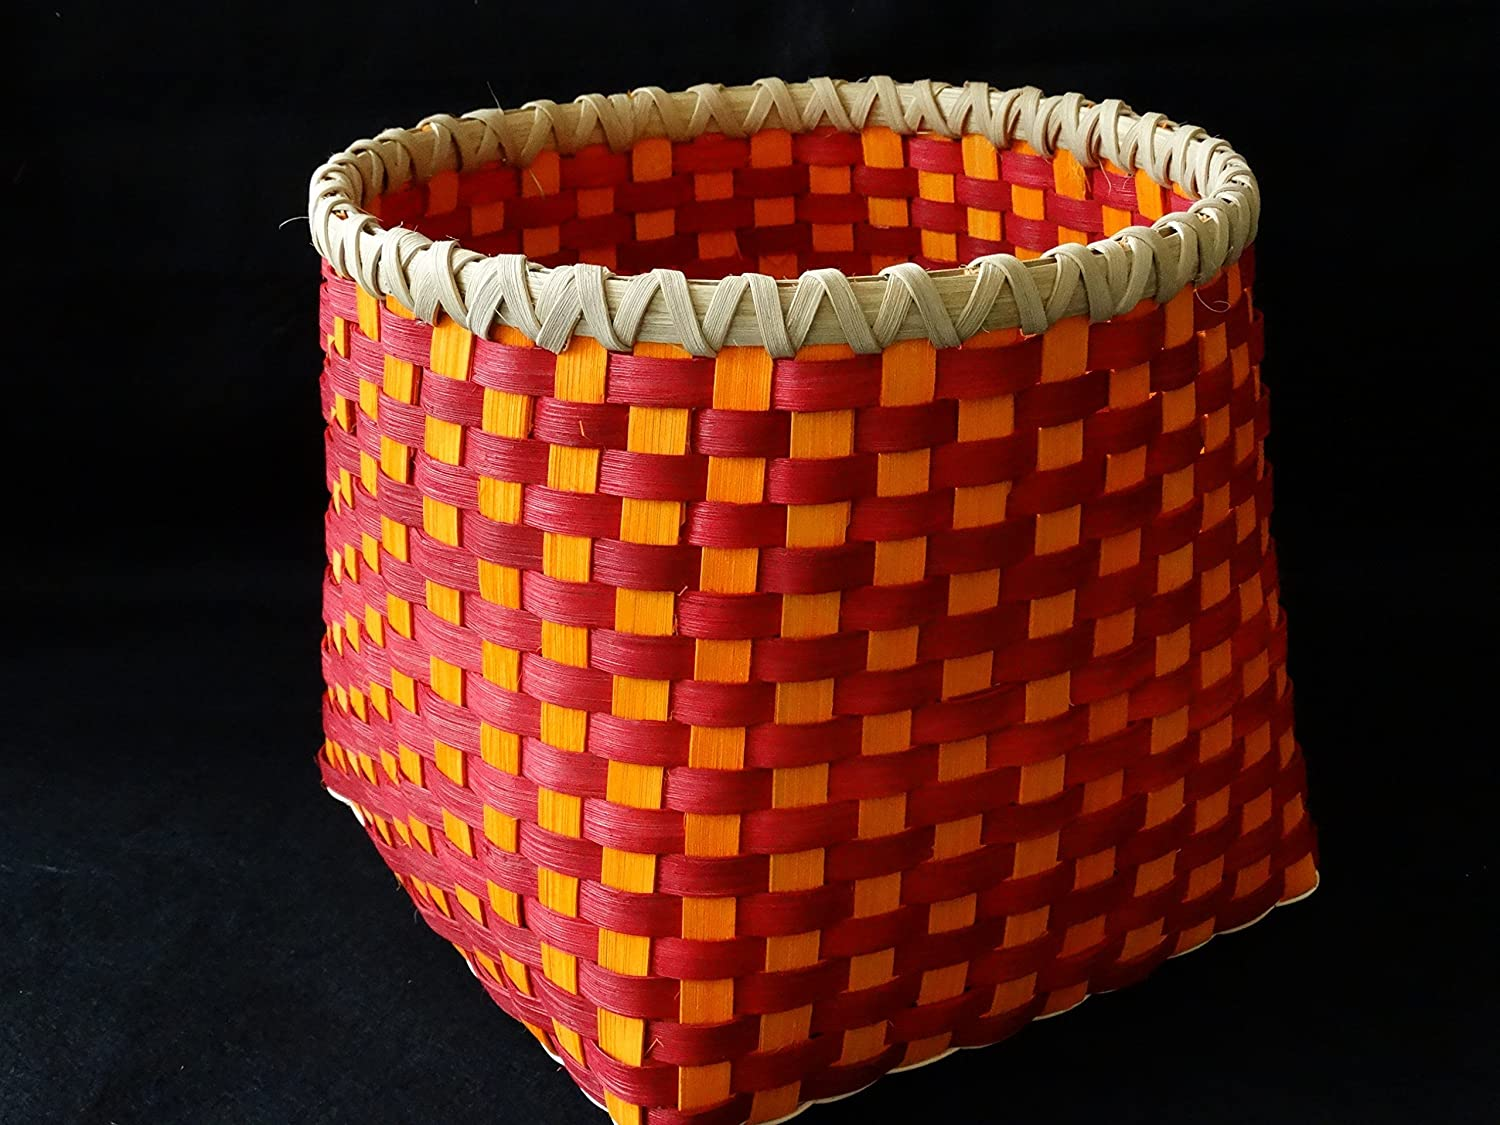 Hand woven Basket in Cherry Red Large High quality new and Orange. Sunshine Stora Super-cheap